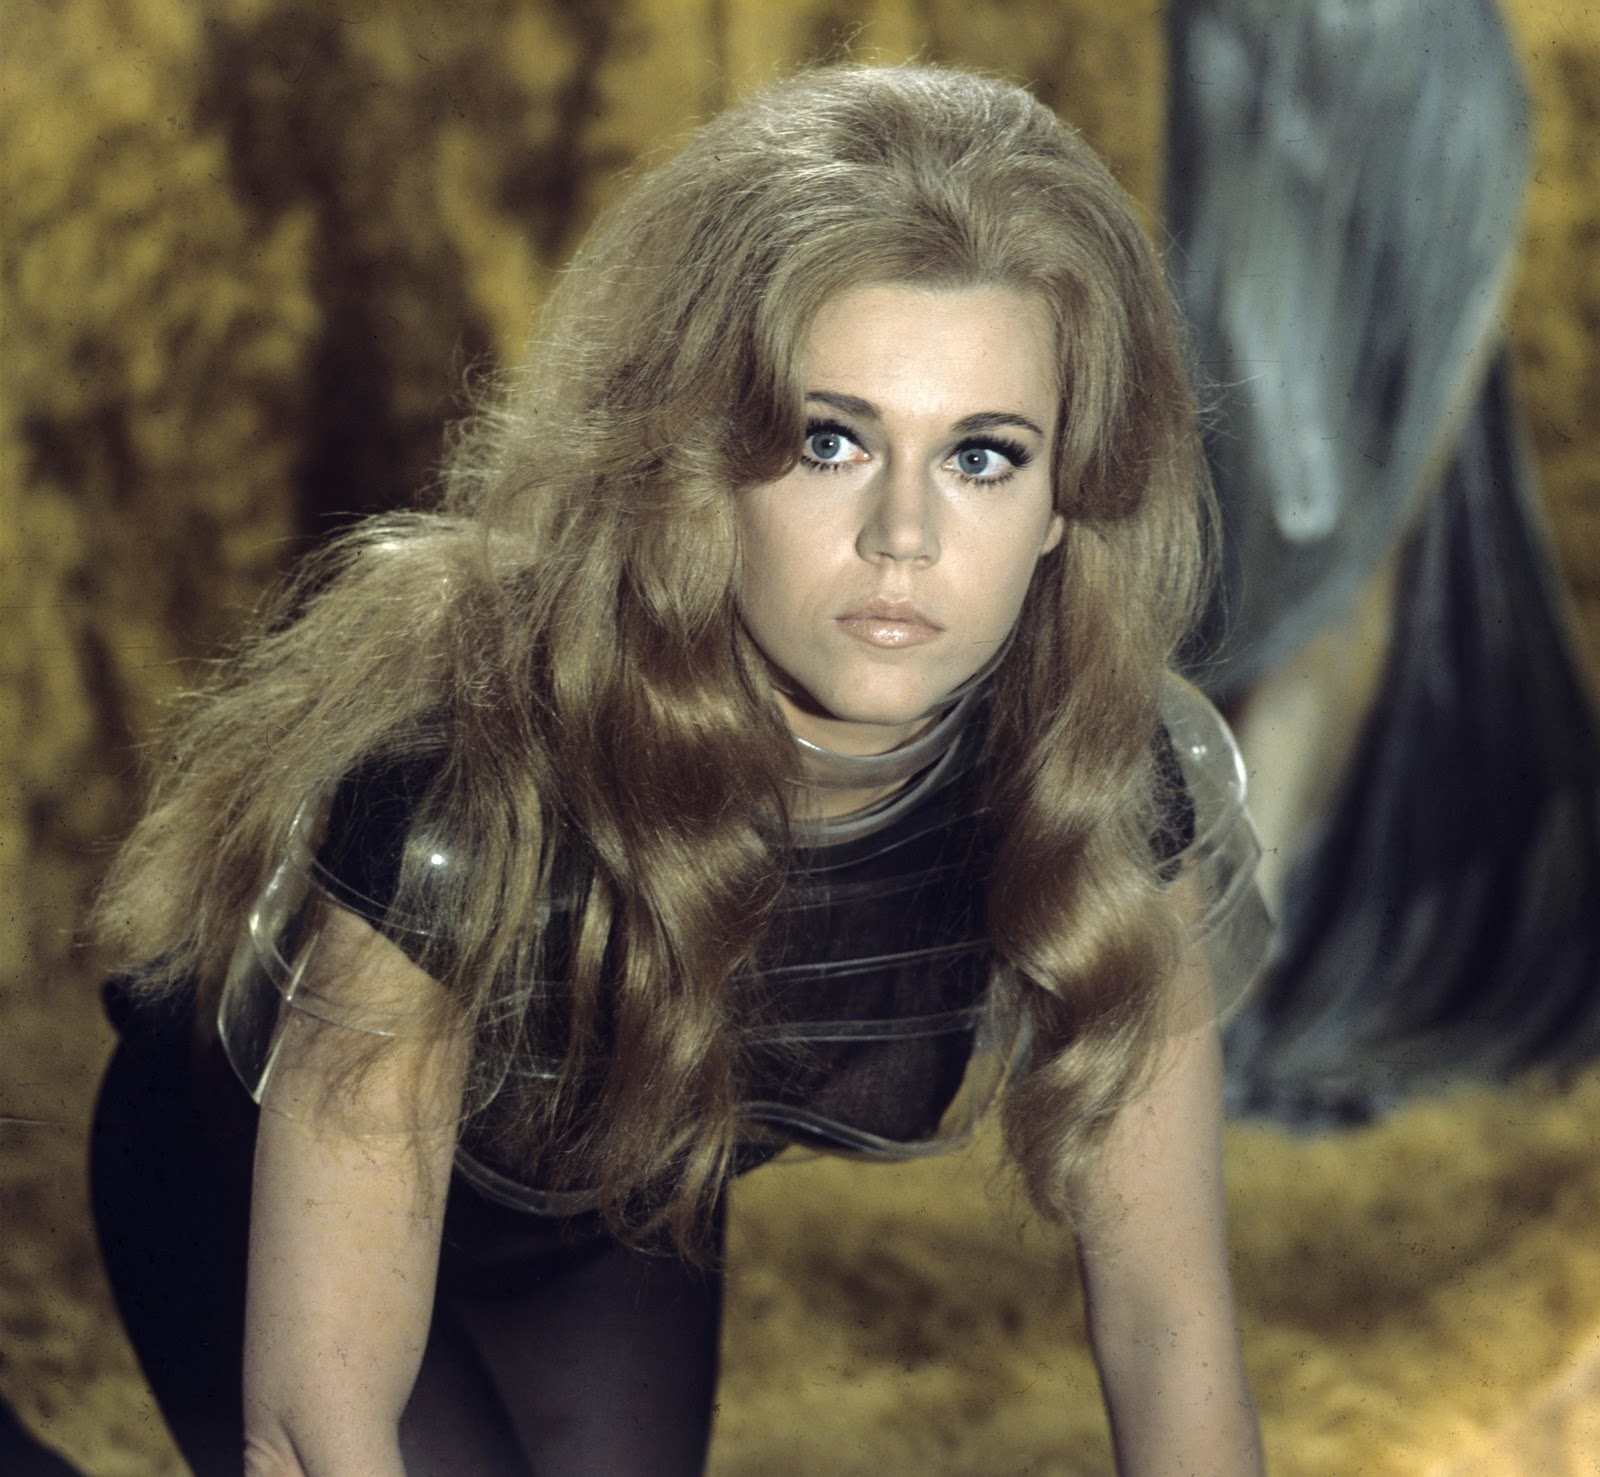 from Mohamed jane fonda hot pic